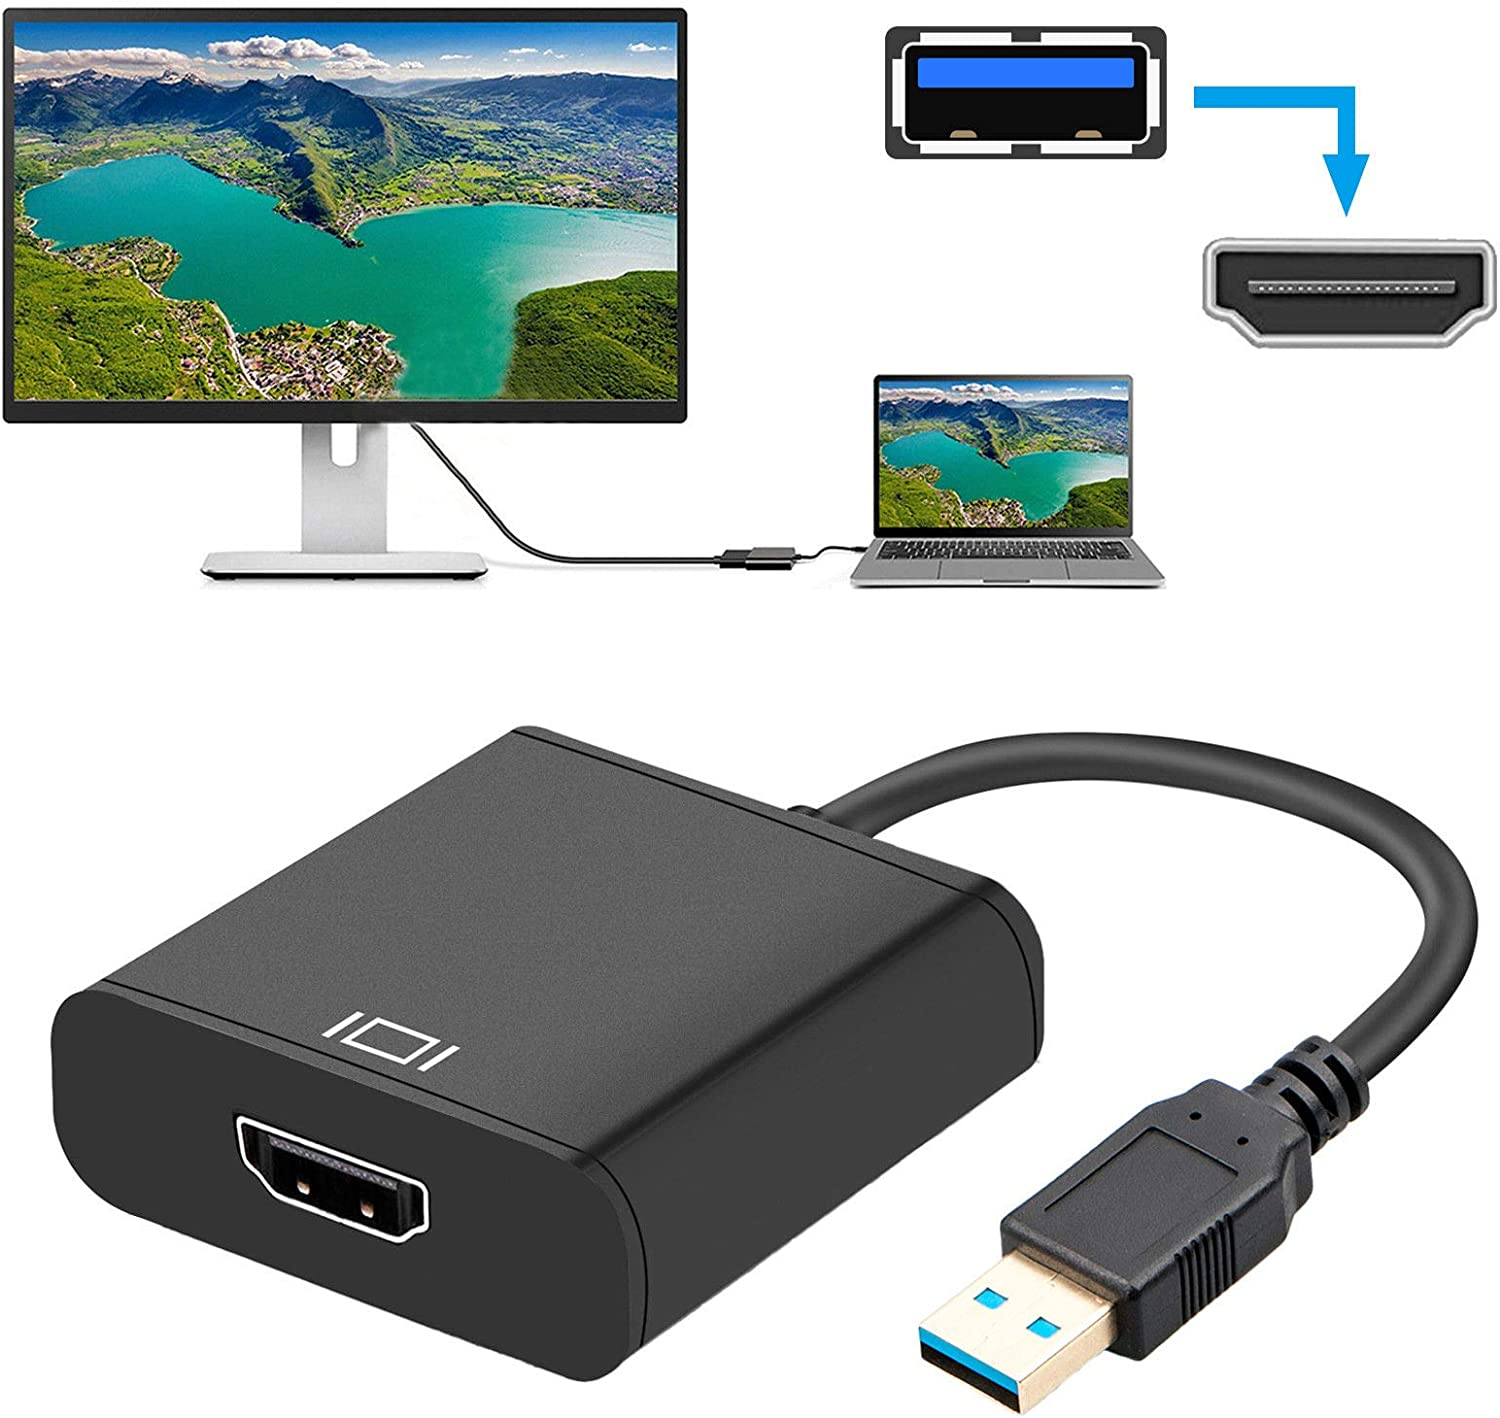 USB to HDMI Adapter for Home Office 4K@60Hz,USB 3.0//2.0 to HDMI 1080P Video Graphics Cable Converter with Audio for PC Laptop Projector HDTV Compatible with Windows XP 7//8//8.1//10